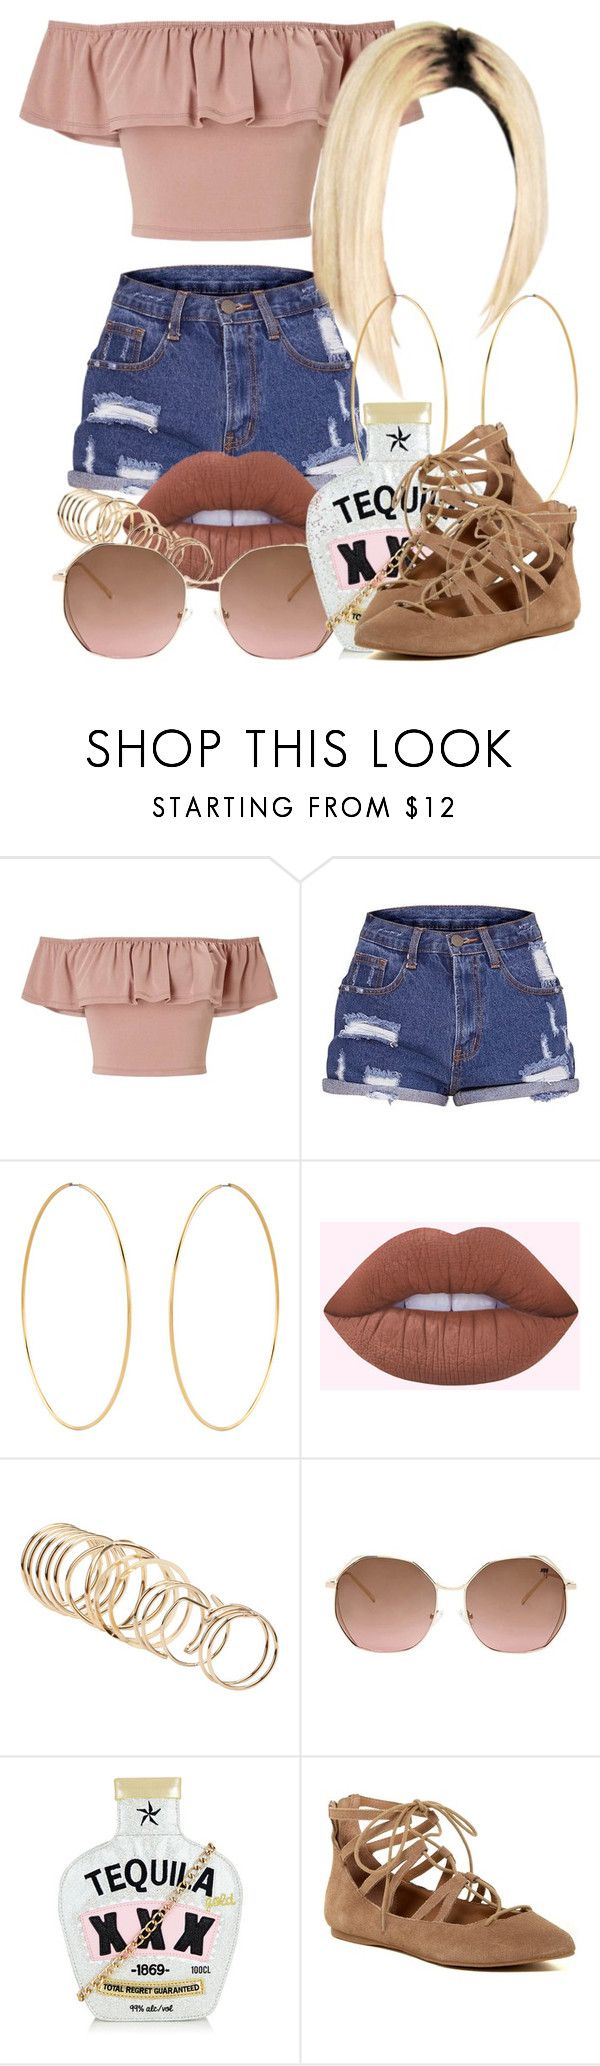 """""""4 10 17"""" by miizz-starburst ❤ liked on Polyvore featuring Miss Selfridge, Accessorize, Lime Crime, ALDO, Forever 21 and Steve Madden"""